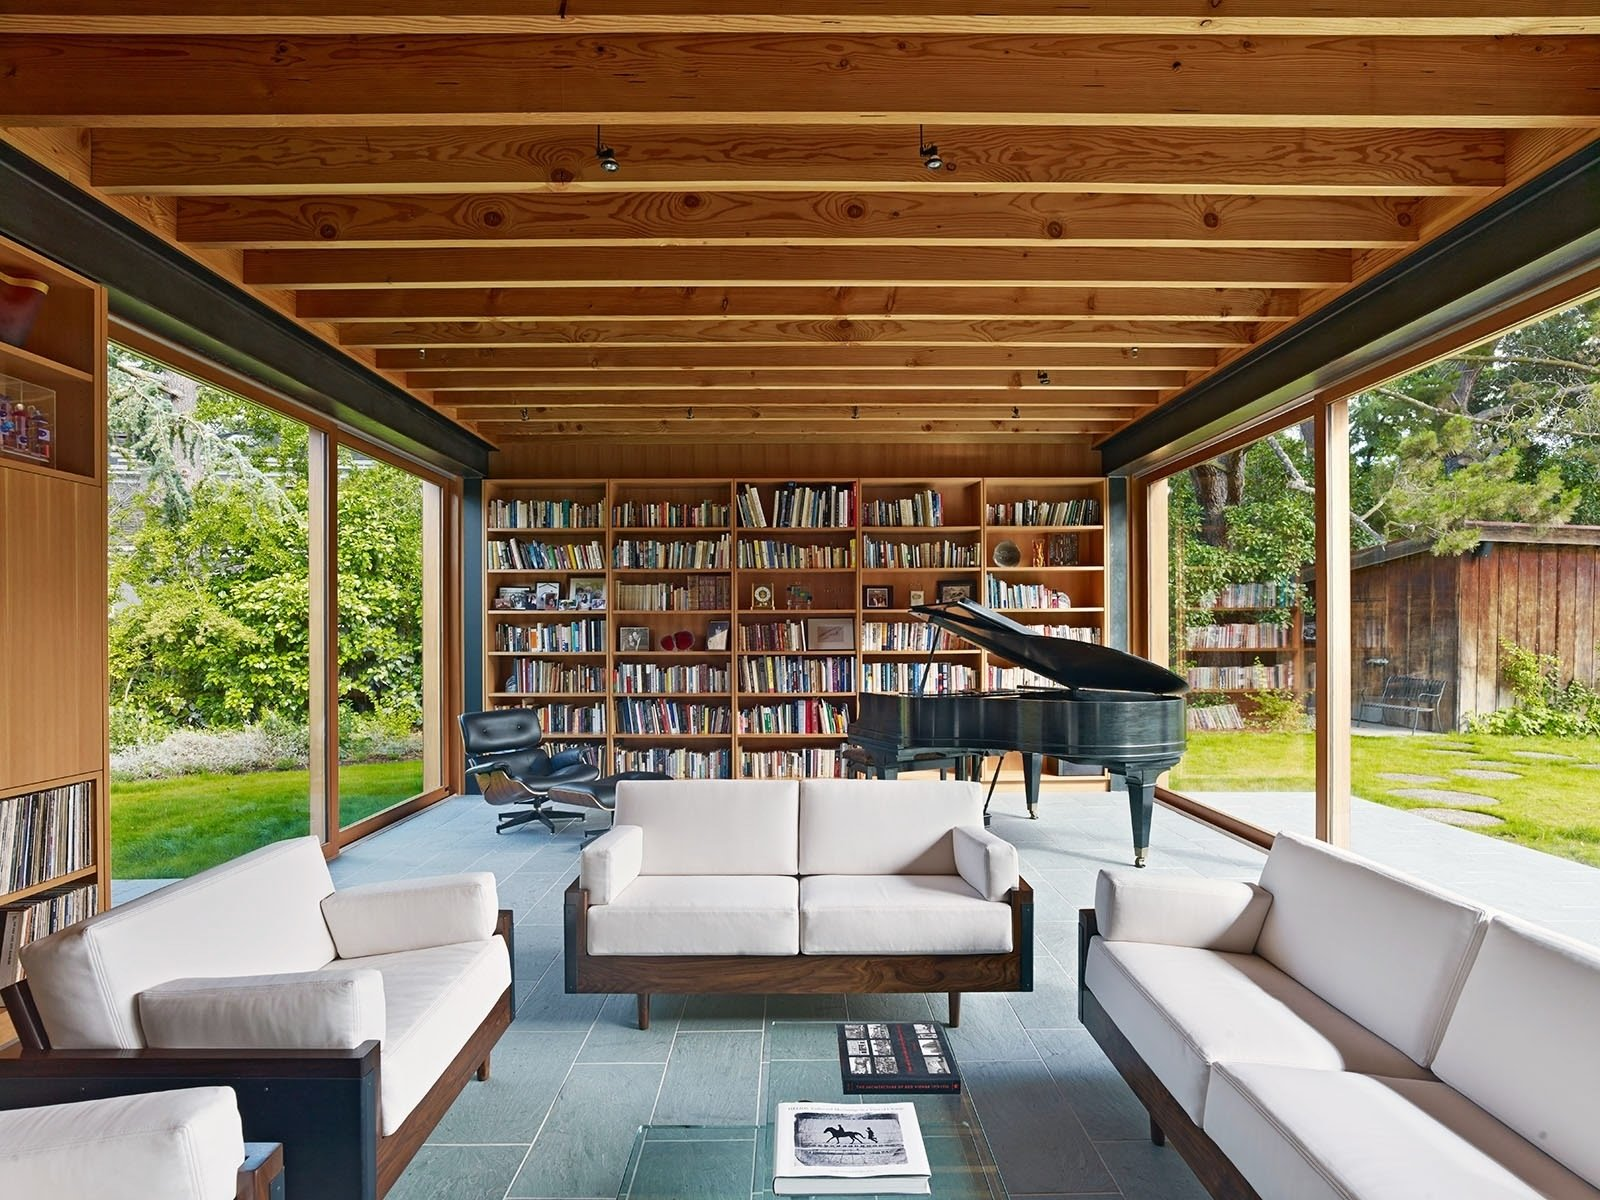 silicon valley smart home spiegel aihara workshop living room